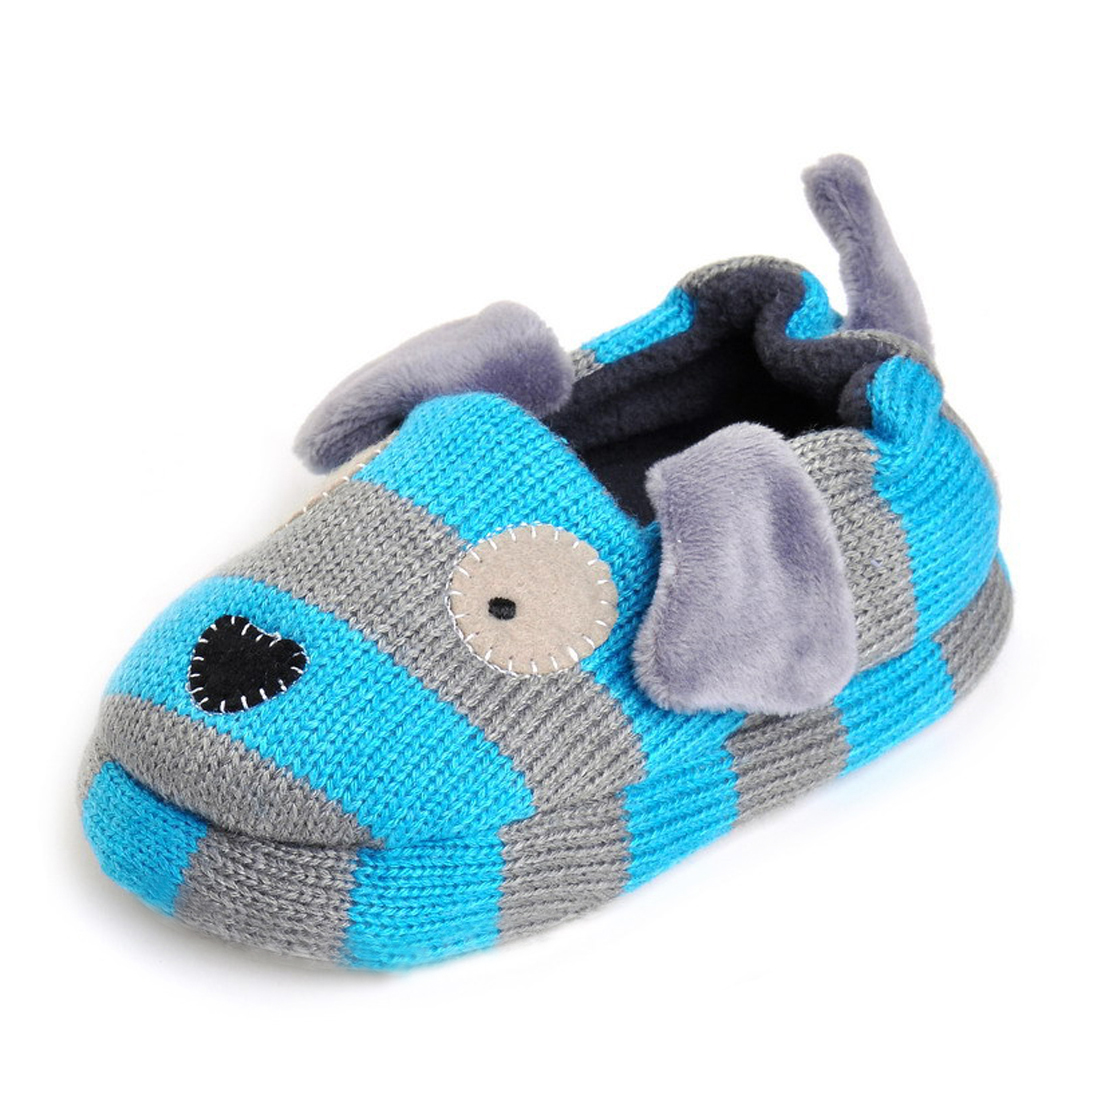 Knitting Shoes Suppliers : Popular kids knitted slippers buy cheap